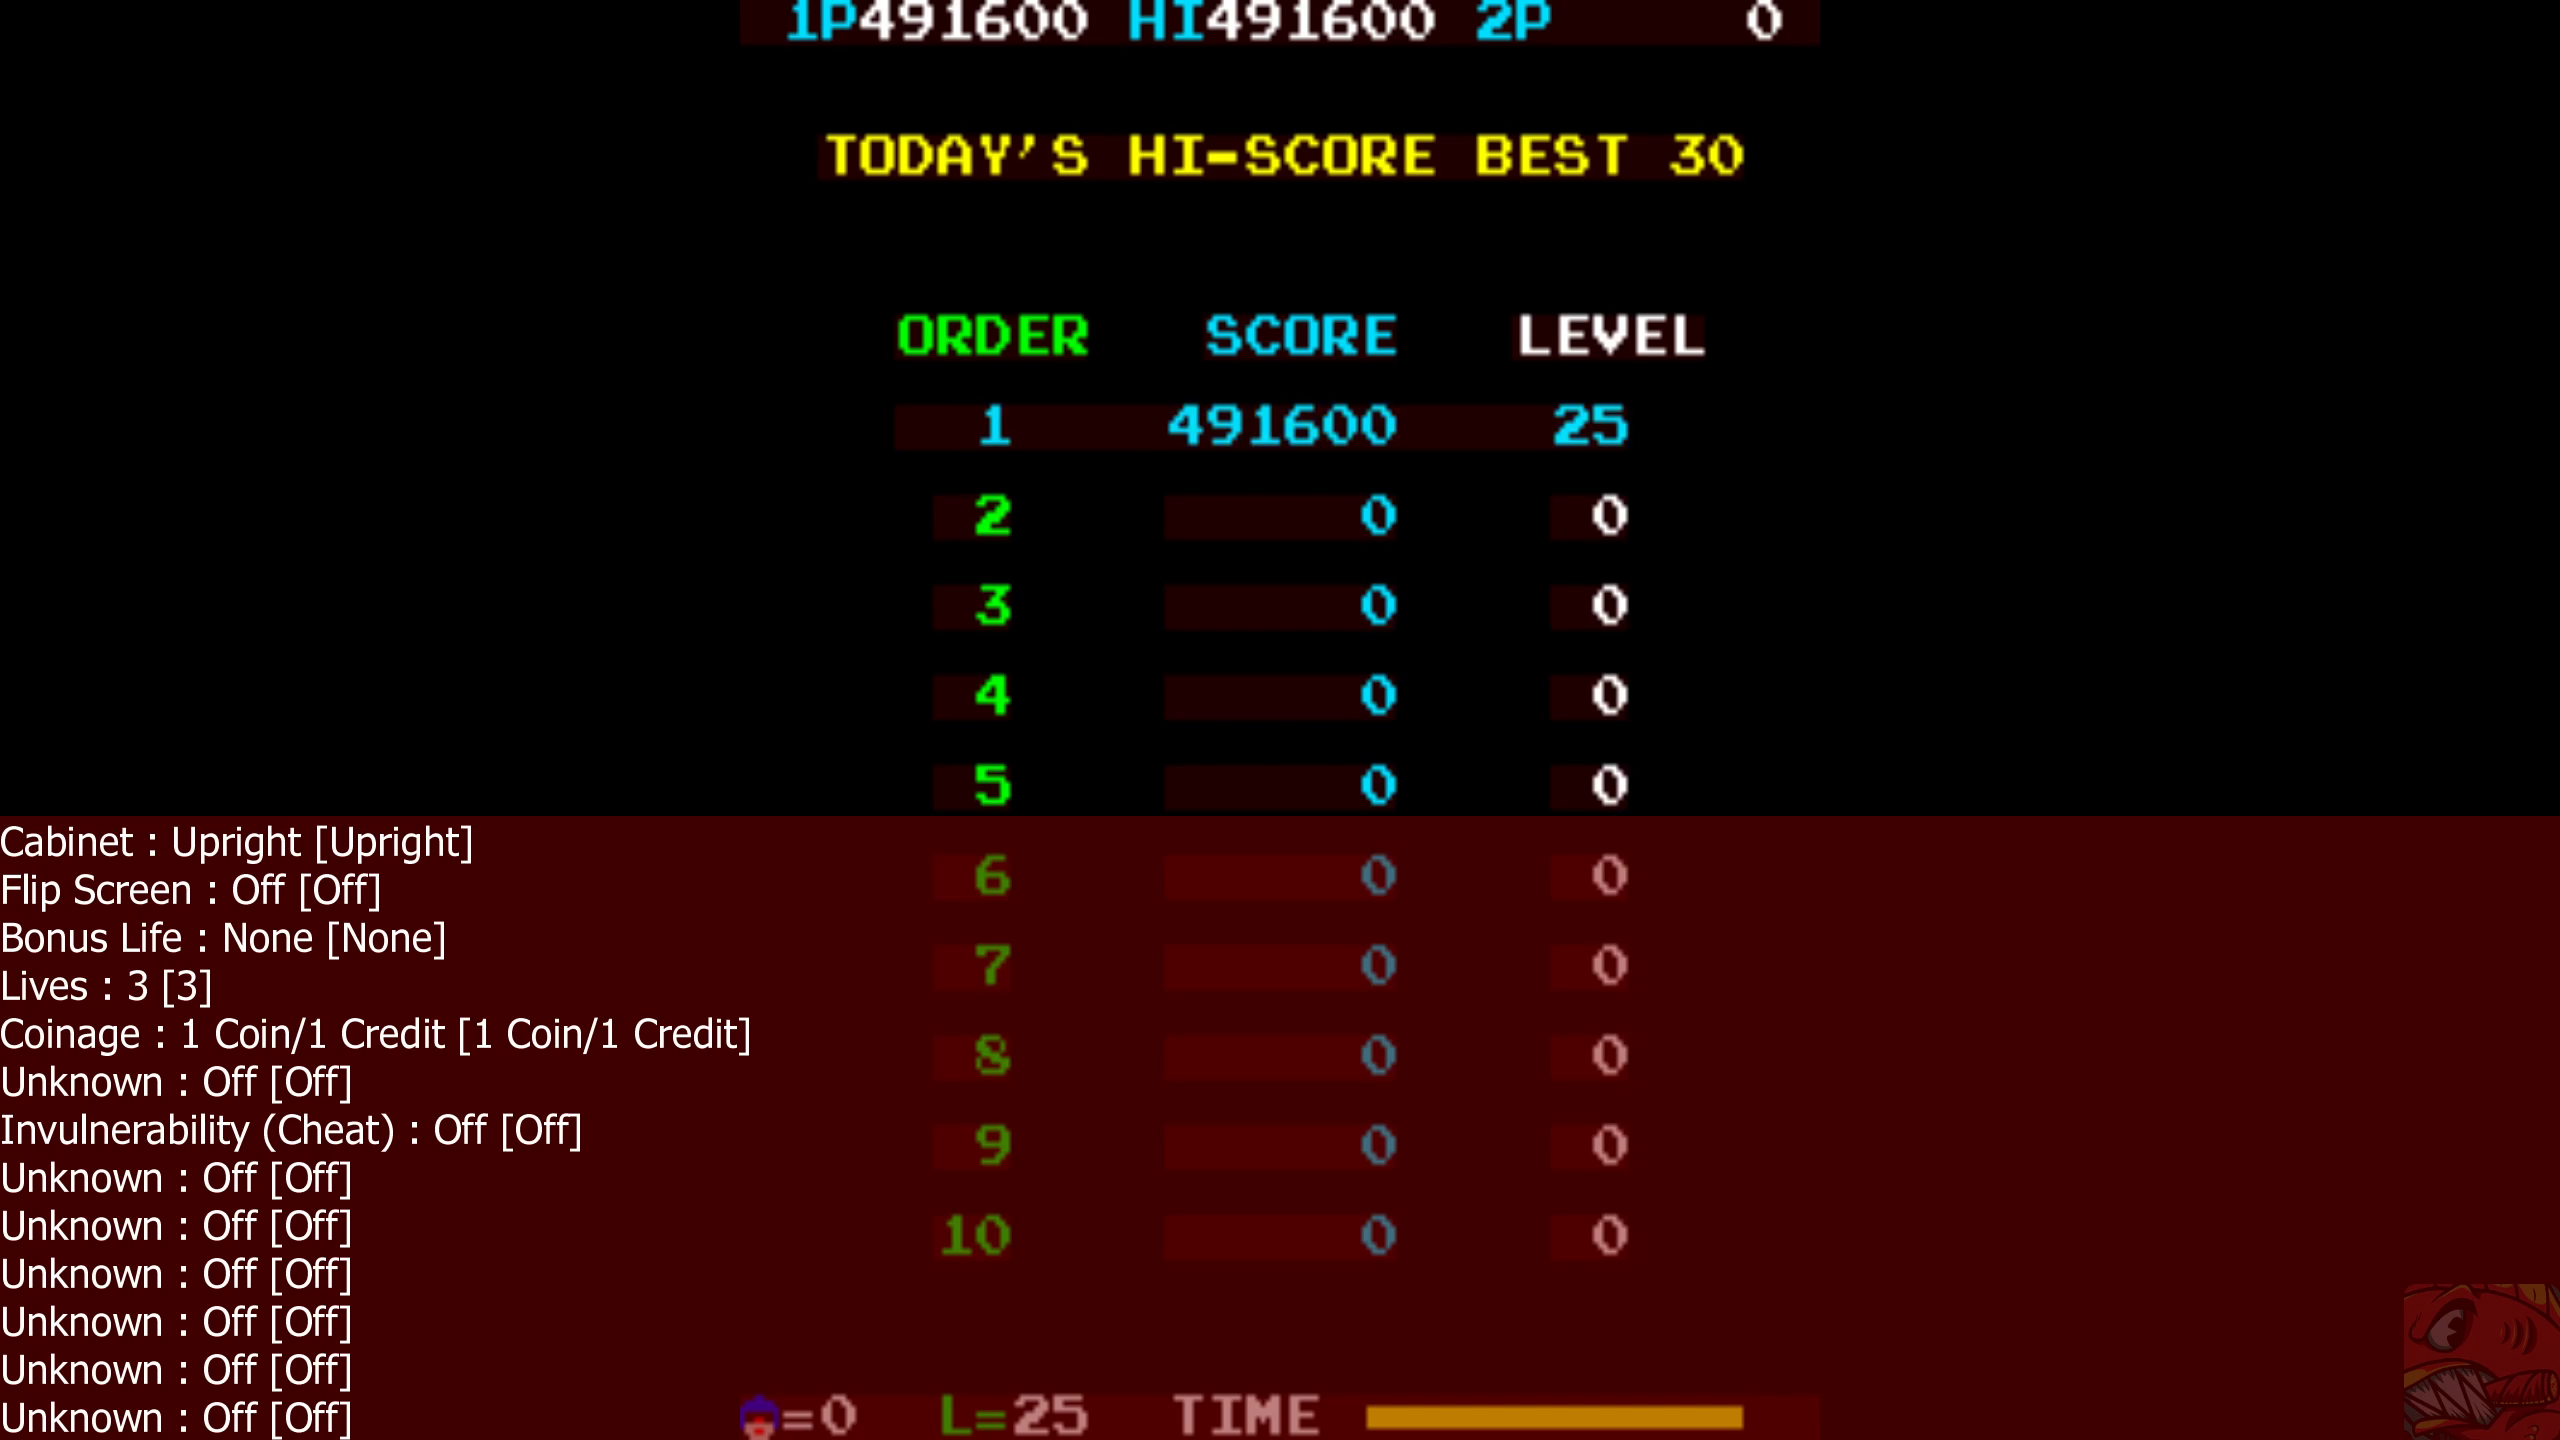 ILLSeaBass: Van-Van Car [vanvan] (Arcade Emulated / M.A.M.E.) 491,600 points on 2020-07-23 23:52:04